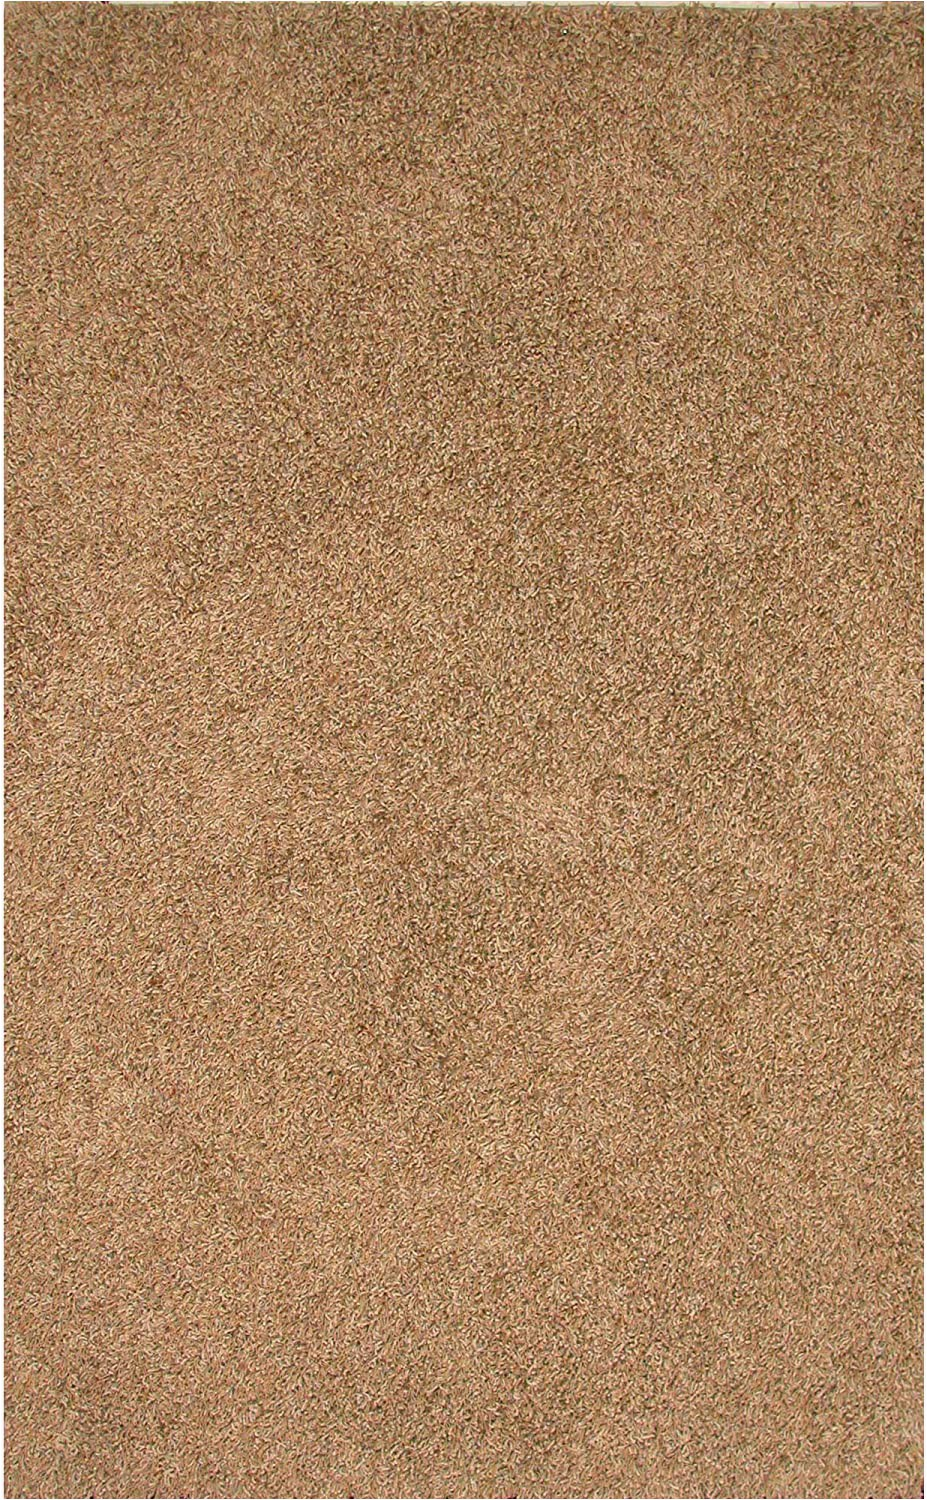 Dalyn Casual Elegance area Rug Amazon Dalyn Rugs Casual Elegance area Rug 4 by 6 Inch